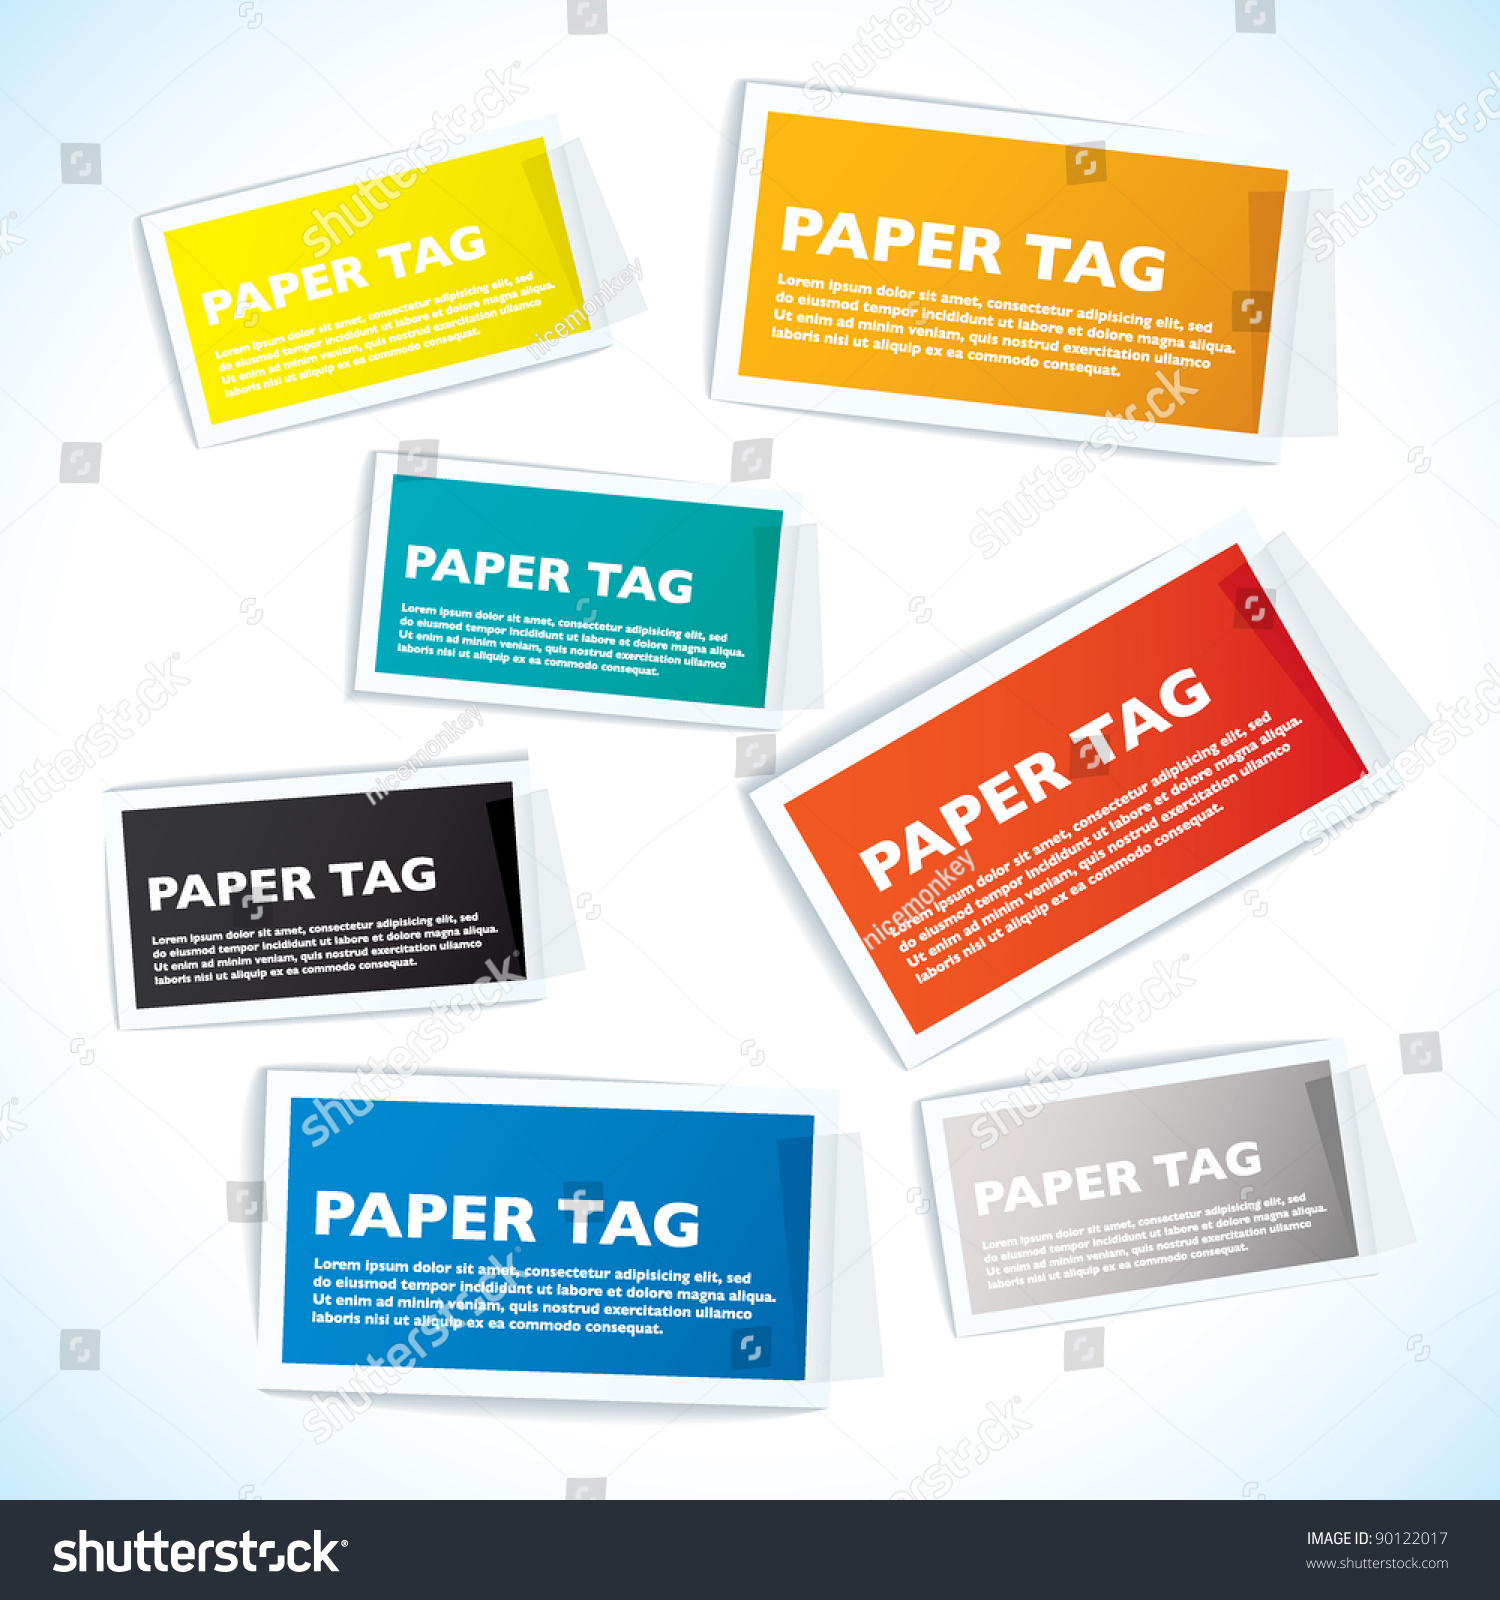 Paper tags white borders sticky tape stock vector 90122017 paper tags with white borders and sticky tape sciox Choice Image